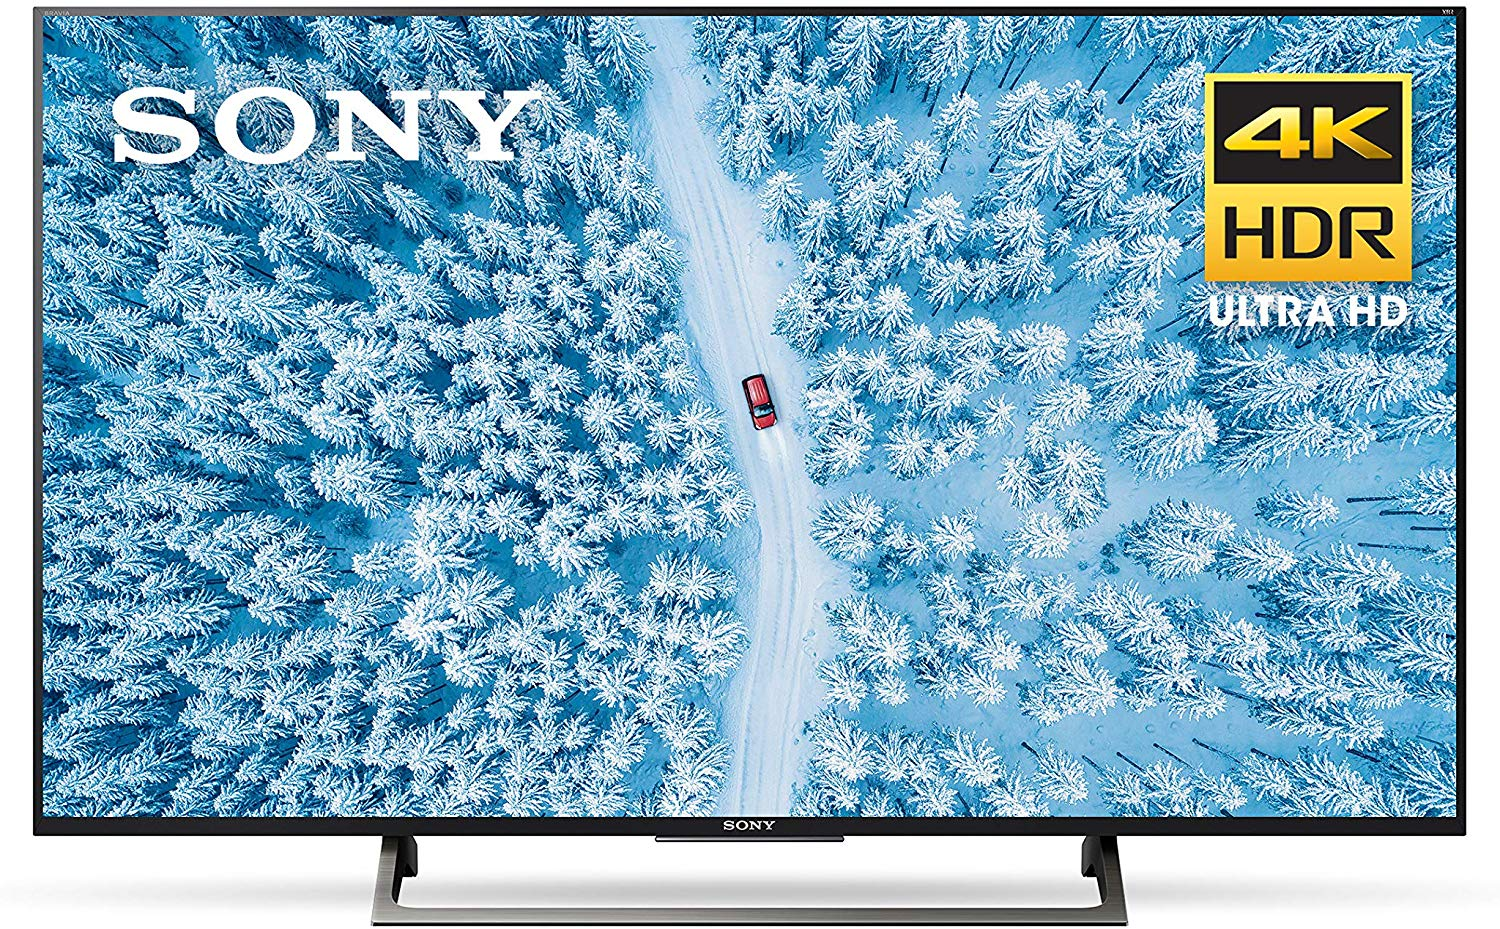 Sony XBR55X800E front view